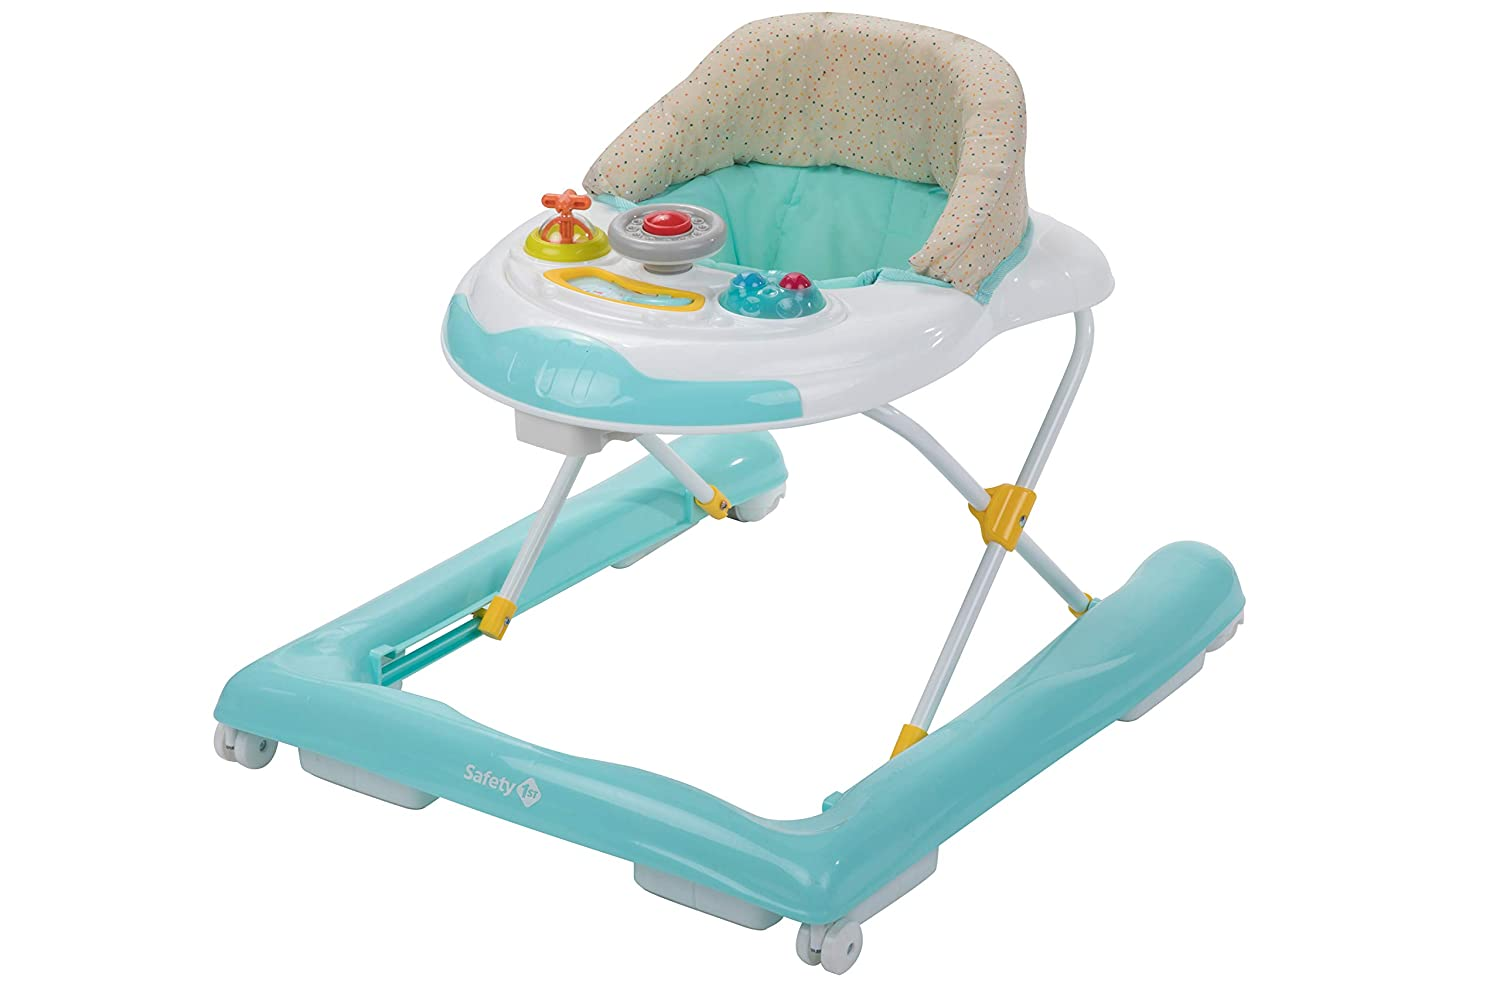 Safety 1st 2726560000 Bolide Trotteur Bébé Musical/Compact Happy Day DORA3